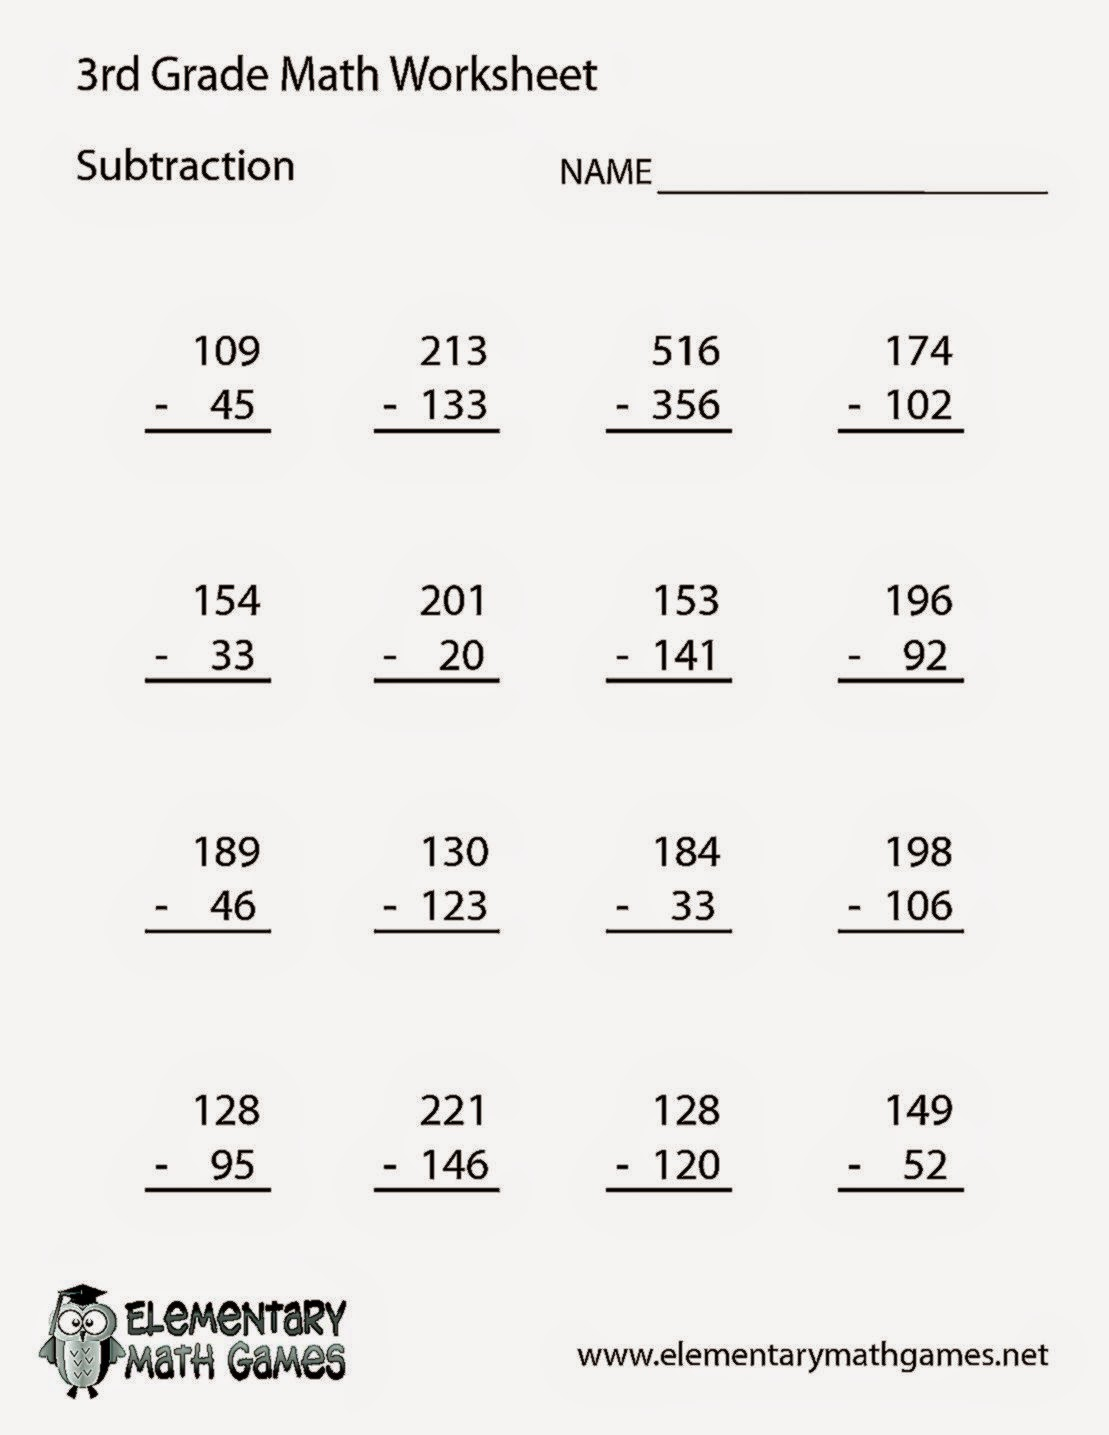 Printables 3rd Grade Mathematics Worksheets free printable coloring math worksheets for 3rd grade pages 7th worksheet games